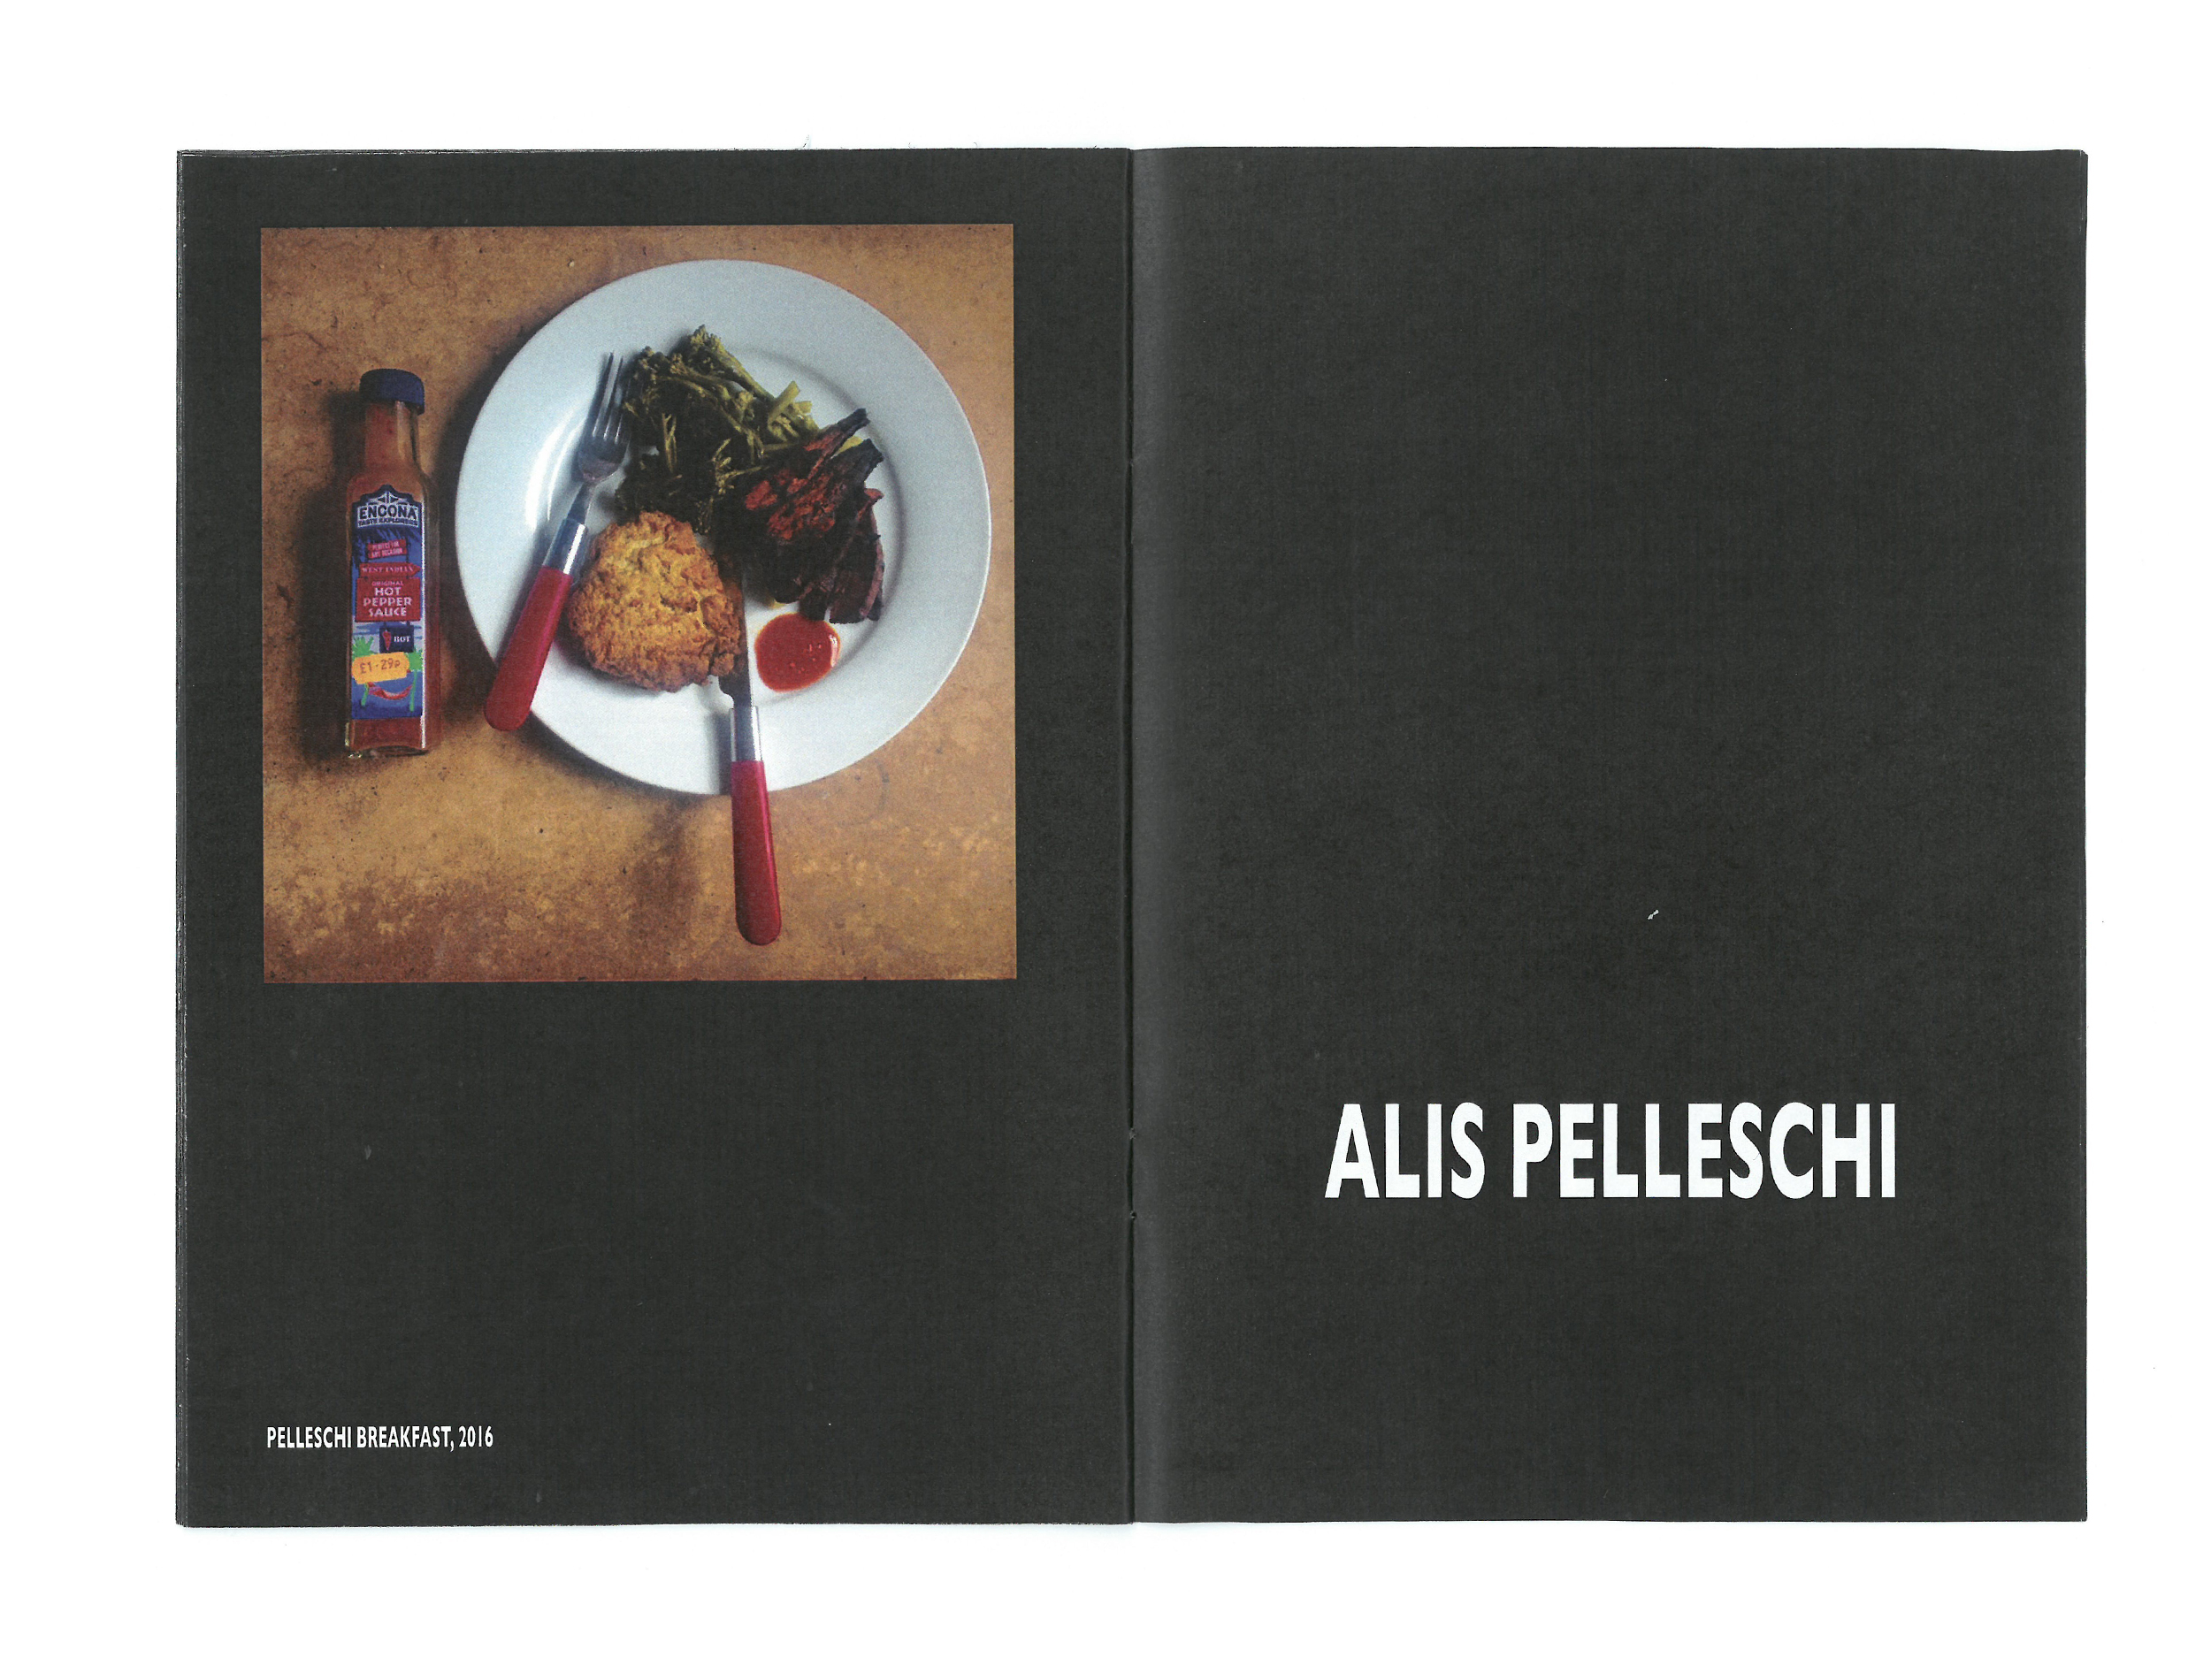 Time Zine: Breakfasttime with Alis Pelleschi featuring Breakfast, 2016